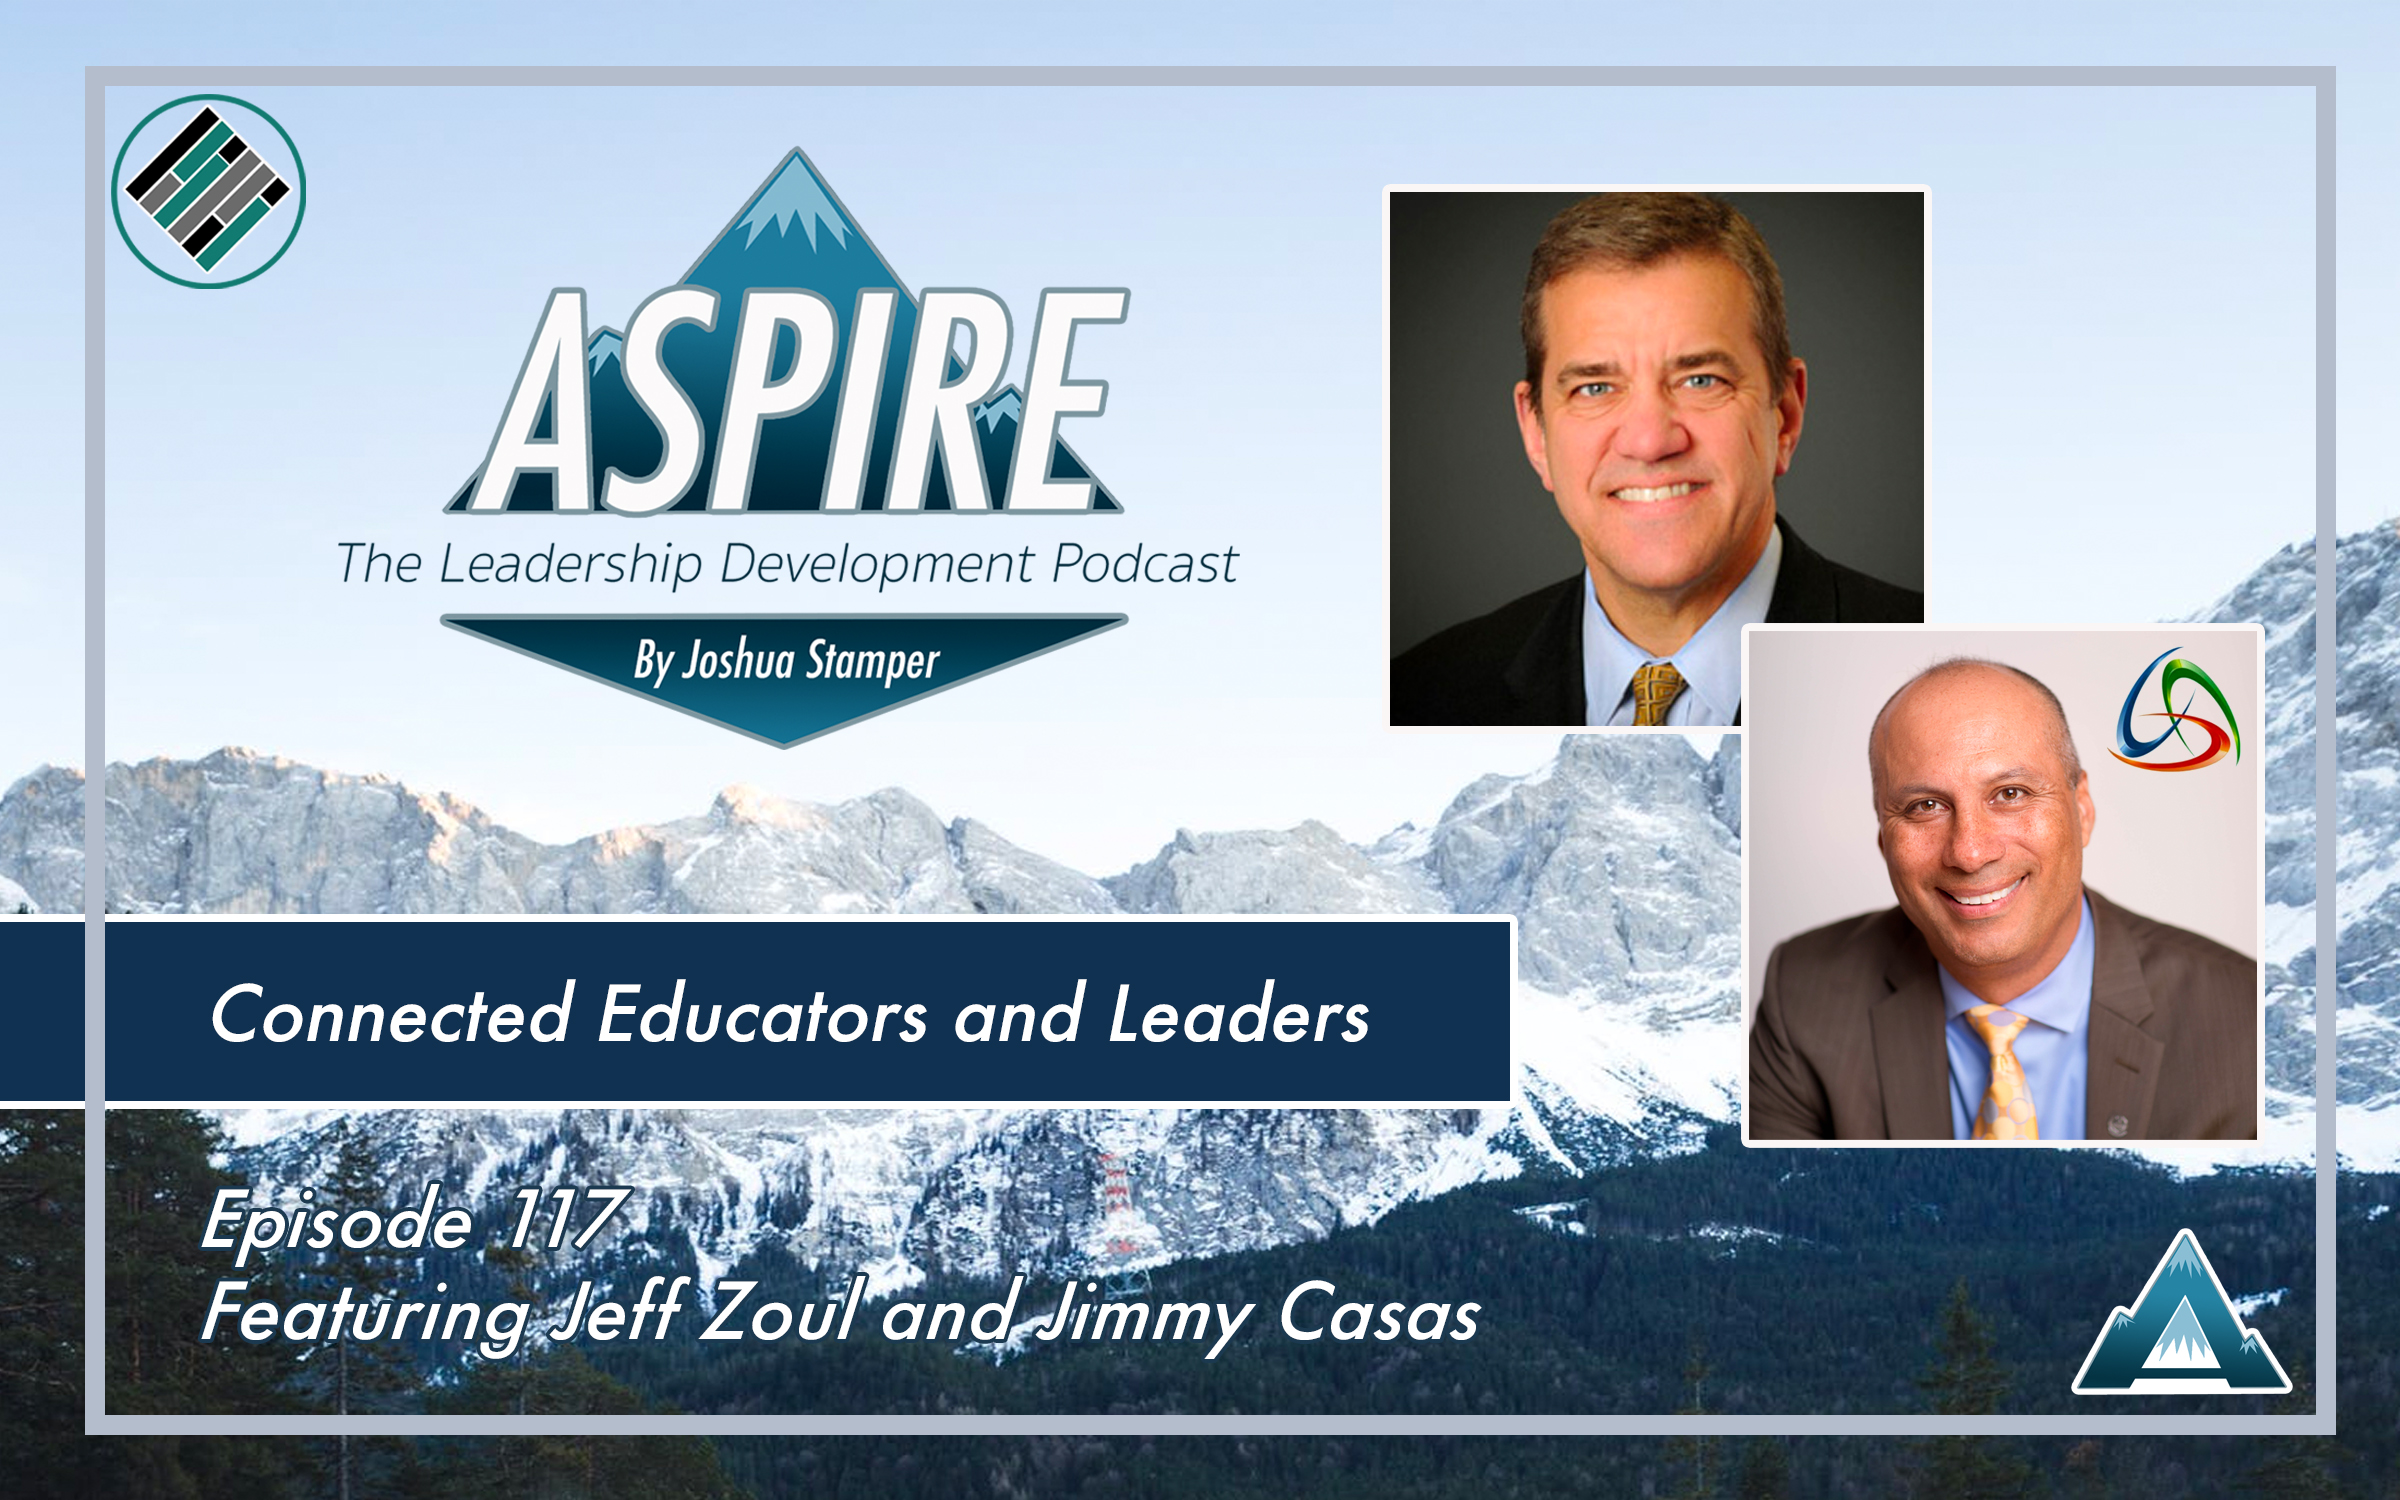 Jimmy Casas, Jeff Zoul, Joshua Stamper, Aspire: The Leadership Development Podcast, ConnectEDD